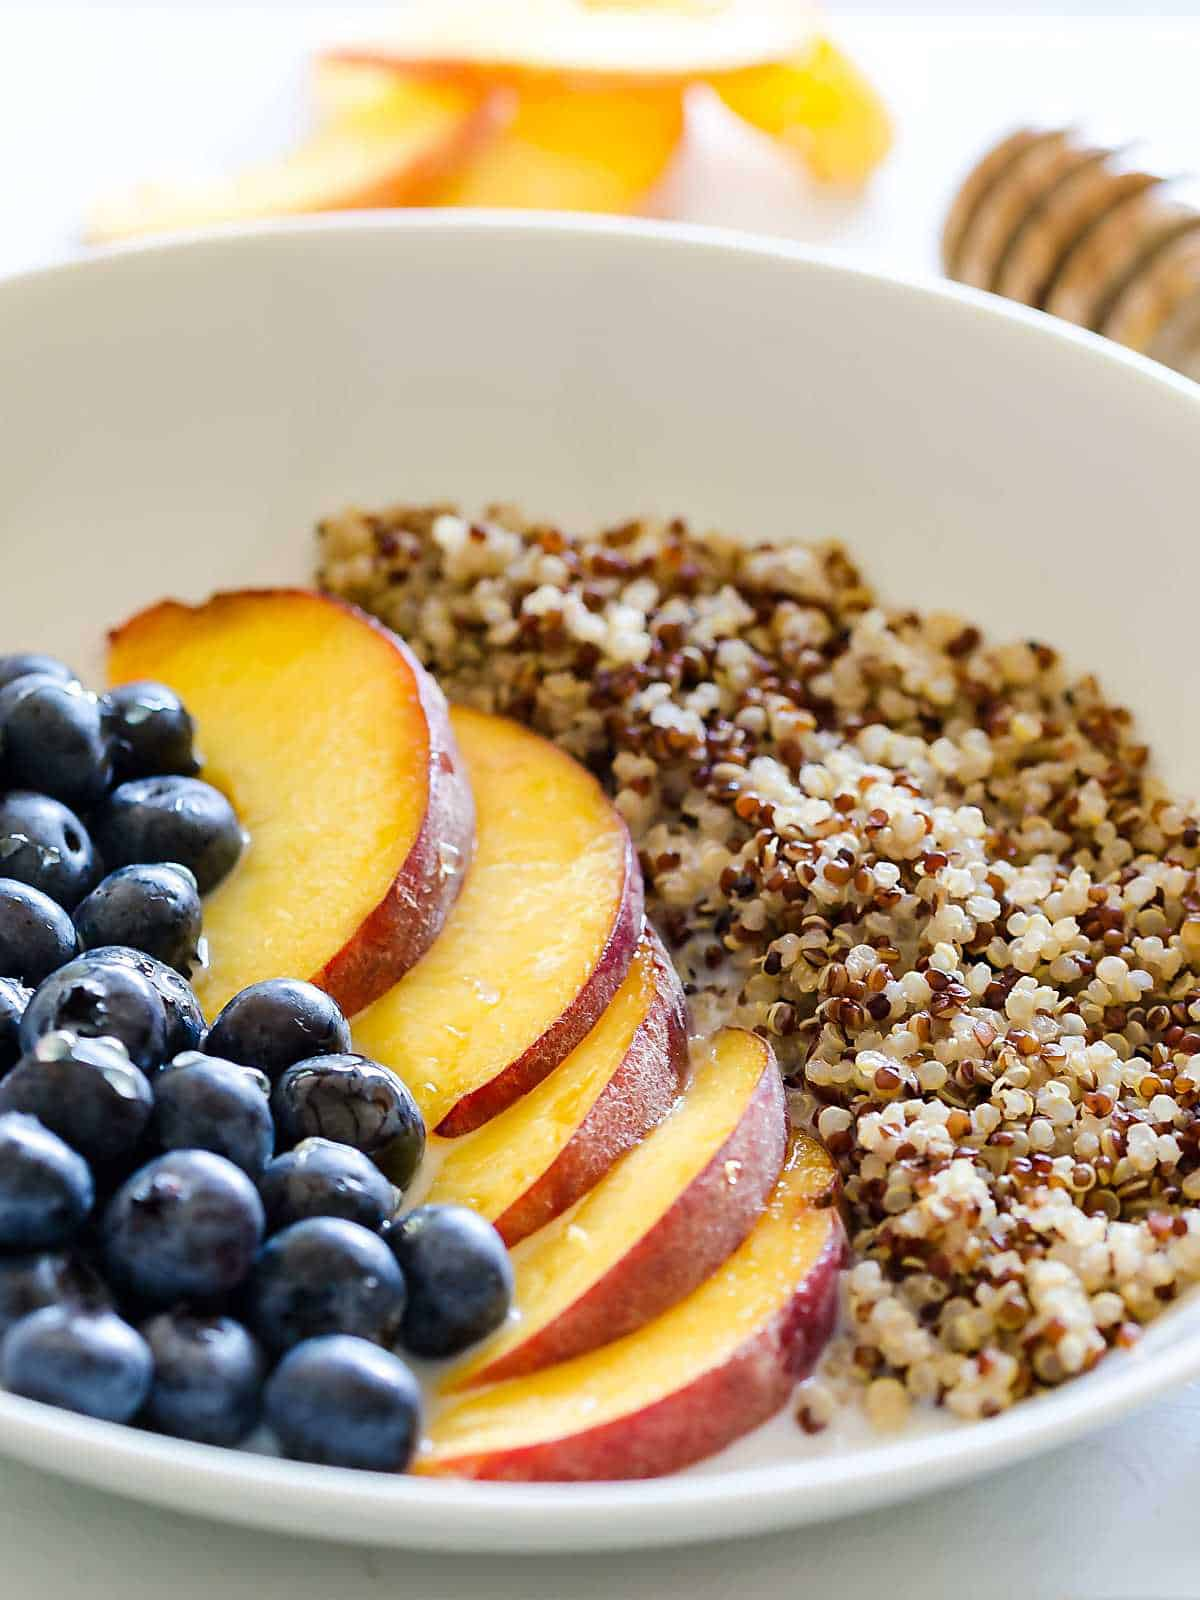 quinoa blueberries and peaches in a shallow white bowl, a row of each.